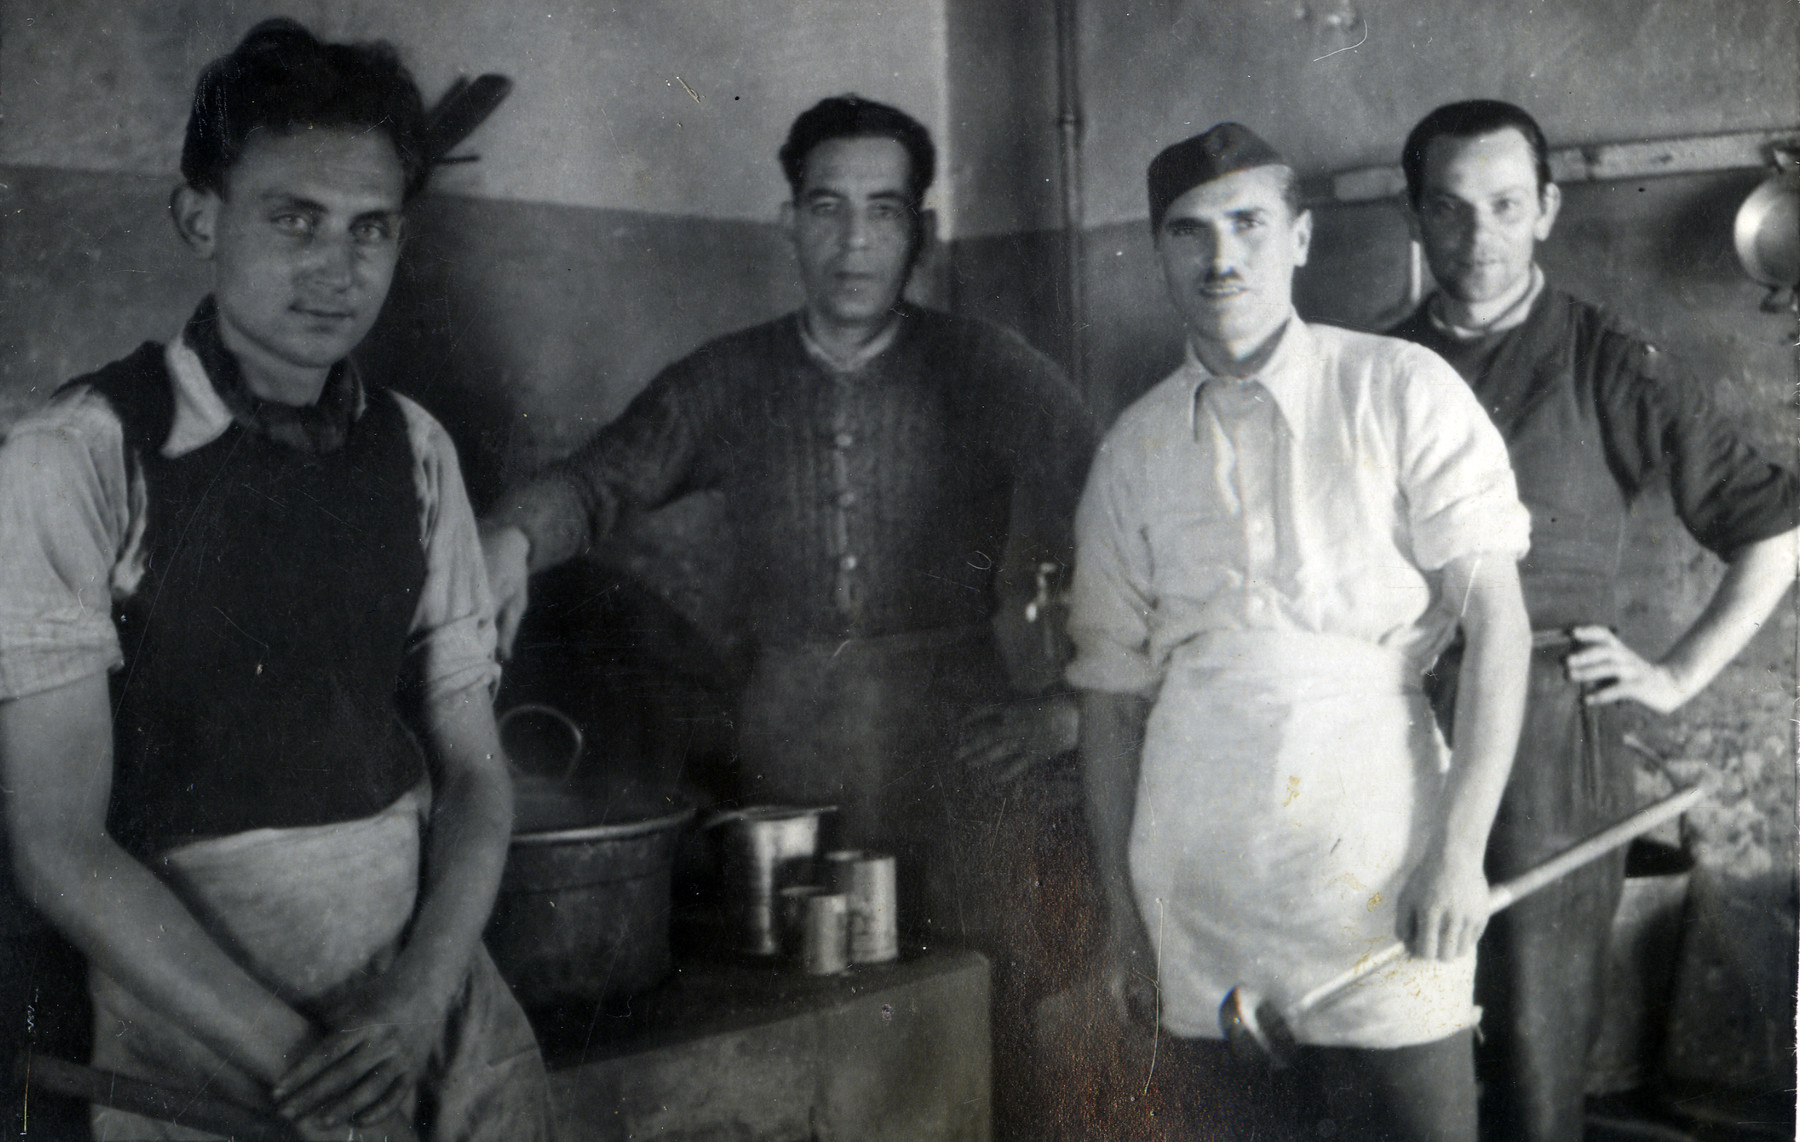 Four men pose in the kitchen at Ferramonti.  Ernest Hellinger is pictured second from the right.